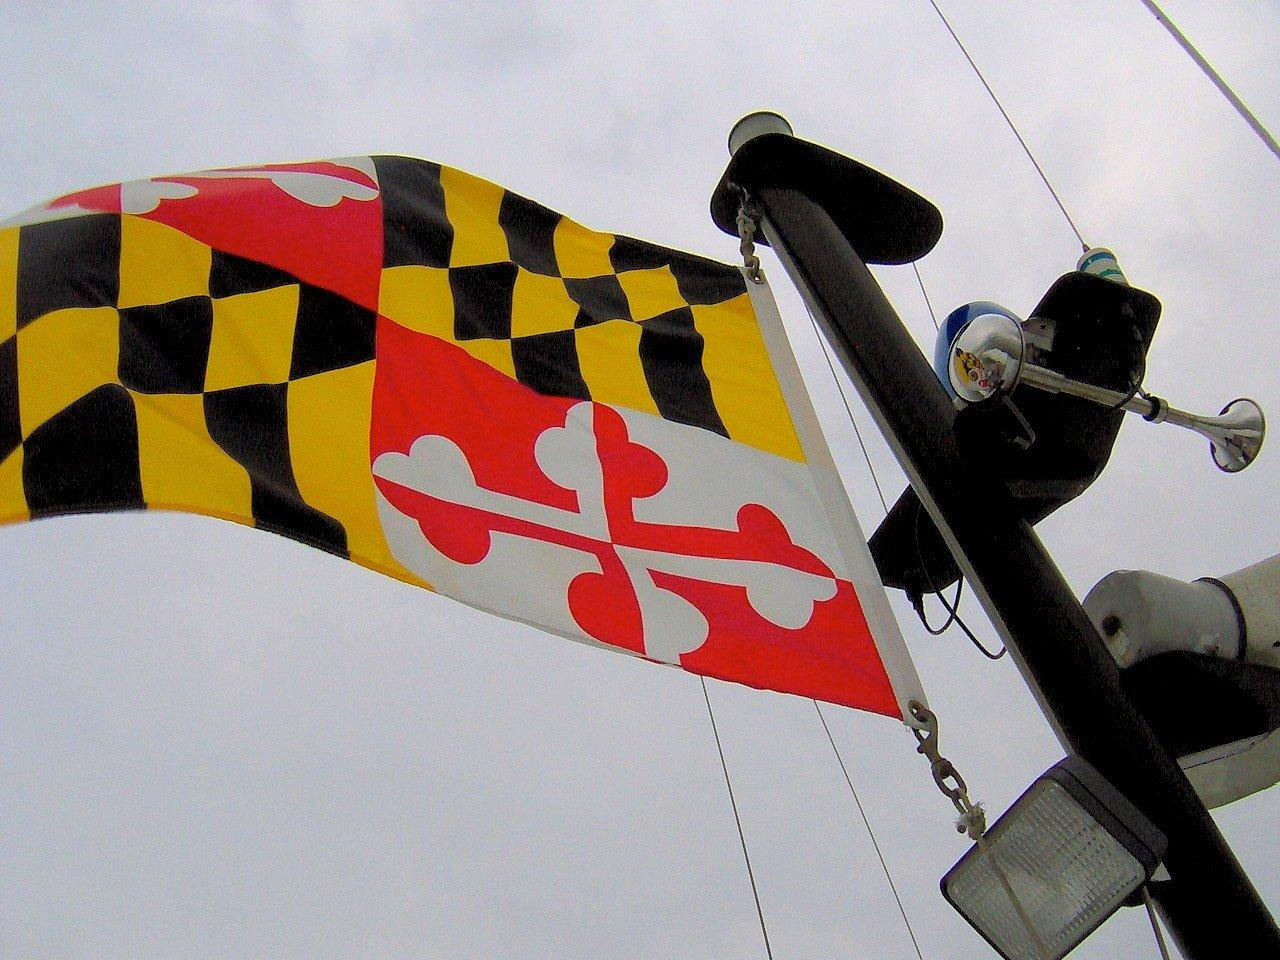 Maryland State Flag. Image: Lee Cannon via Wikimedia Commons